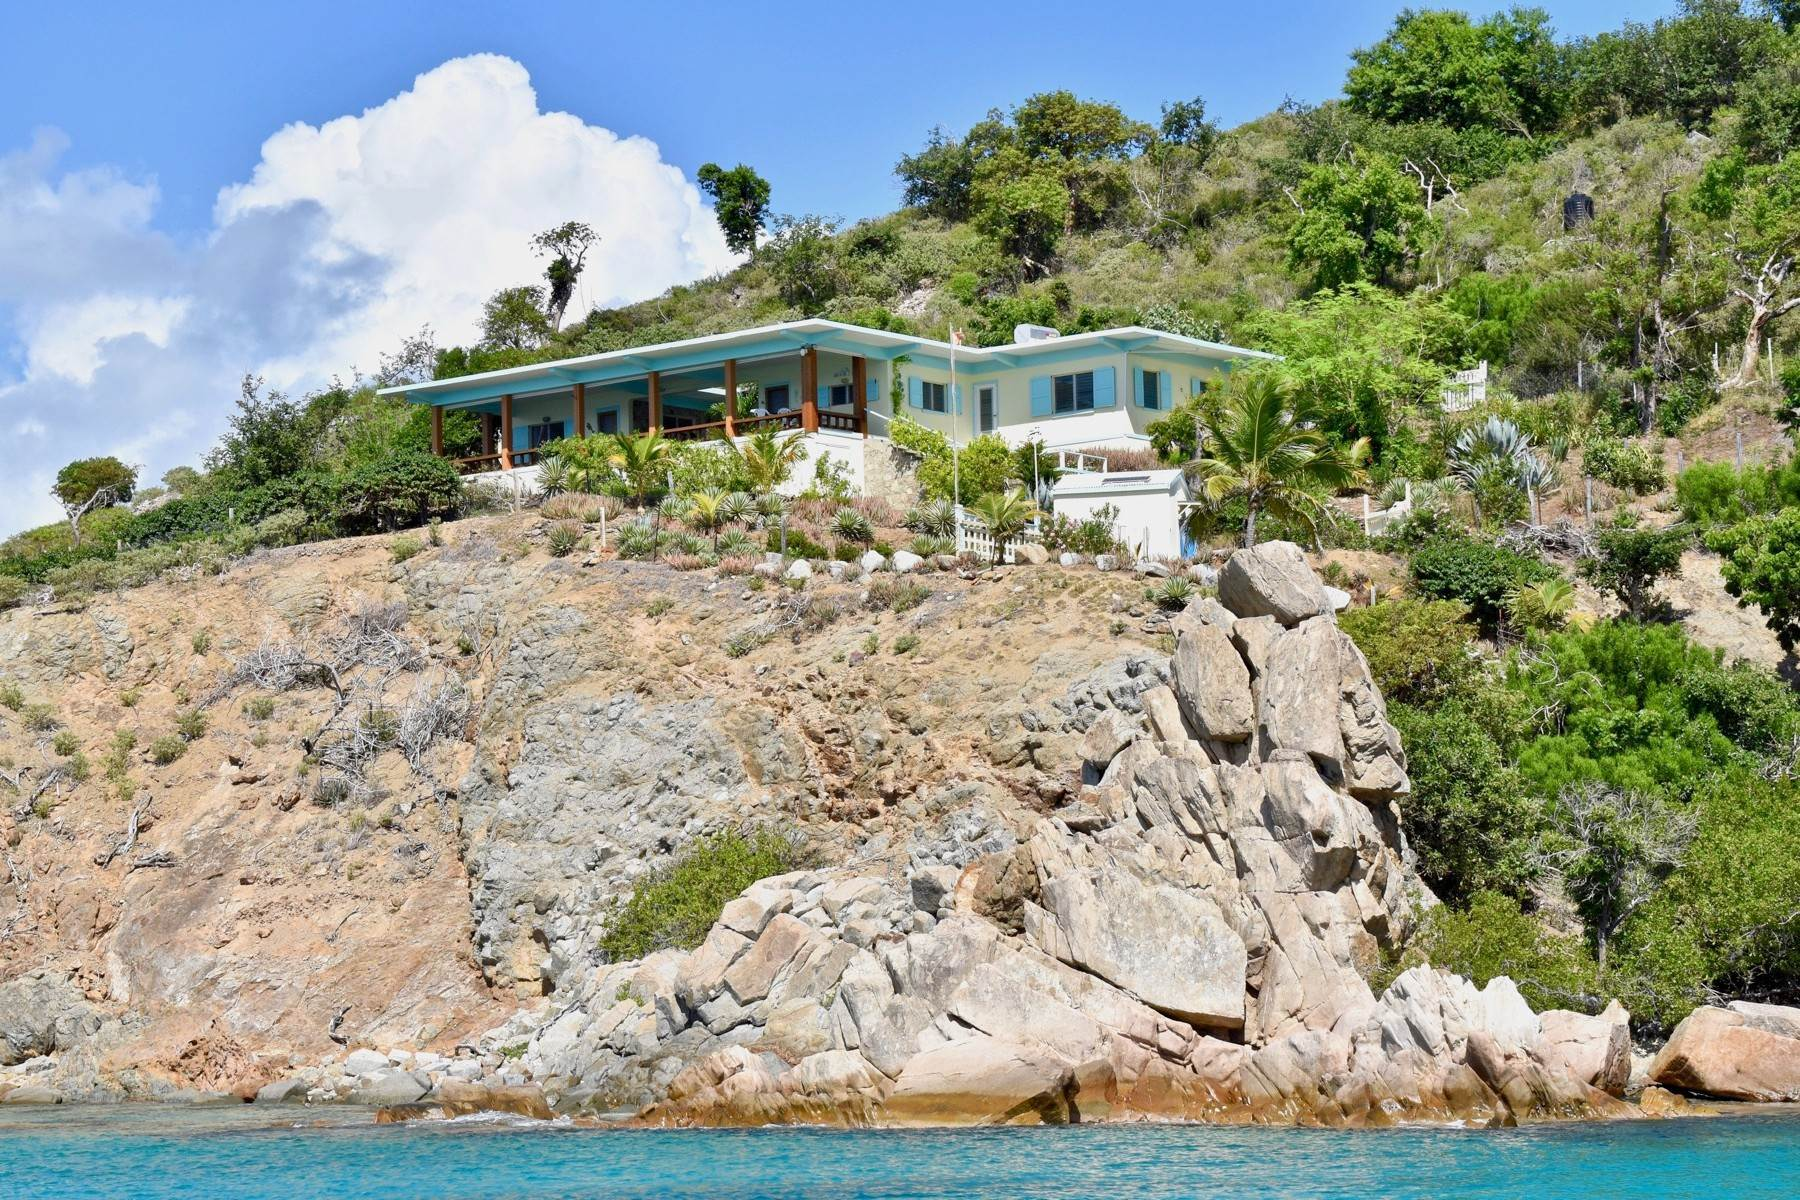 3. Single Family Homes for Sale at Other British Virgin Islands, Other Areas In The British Virgin Islands British Virgin Islands